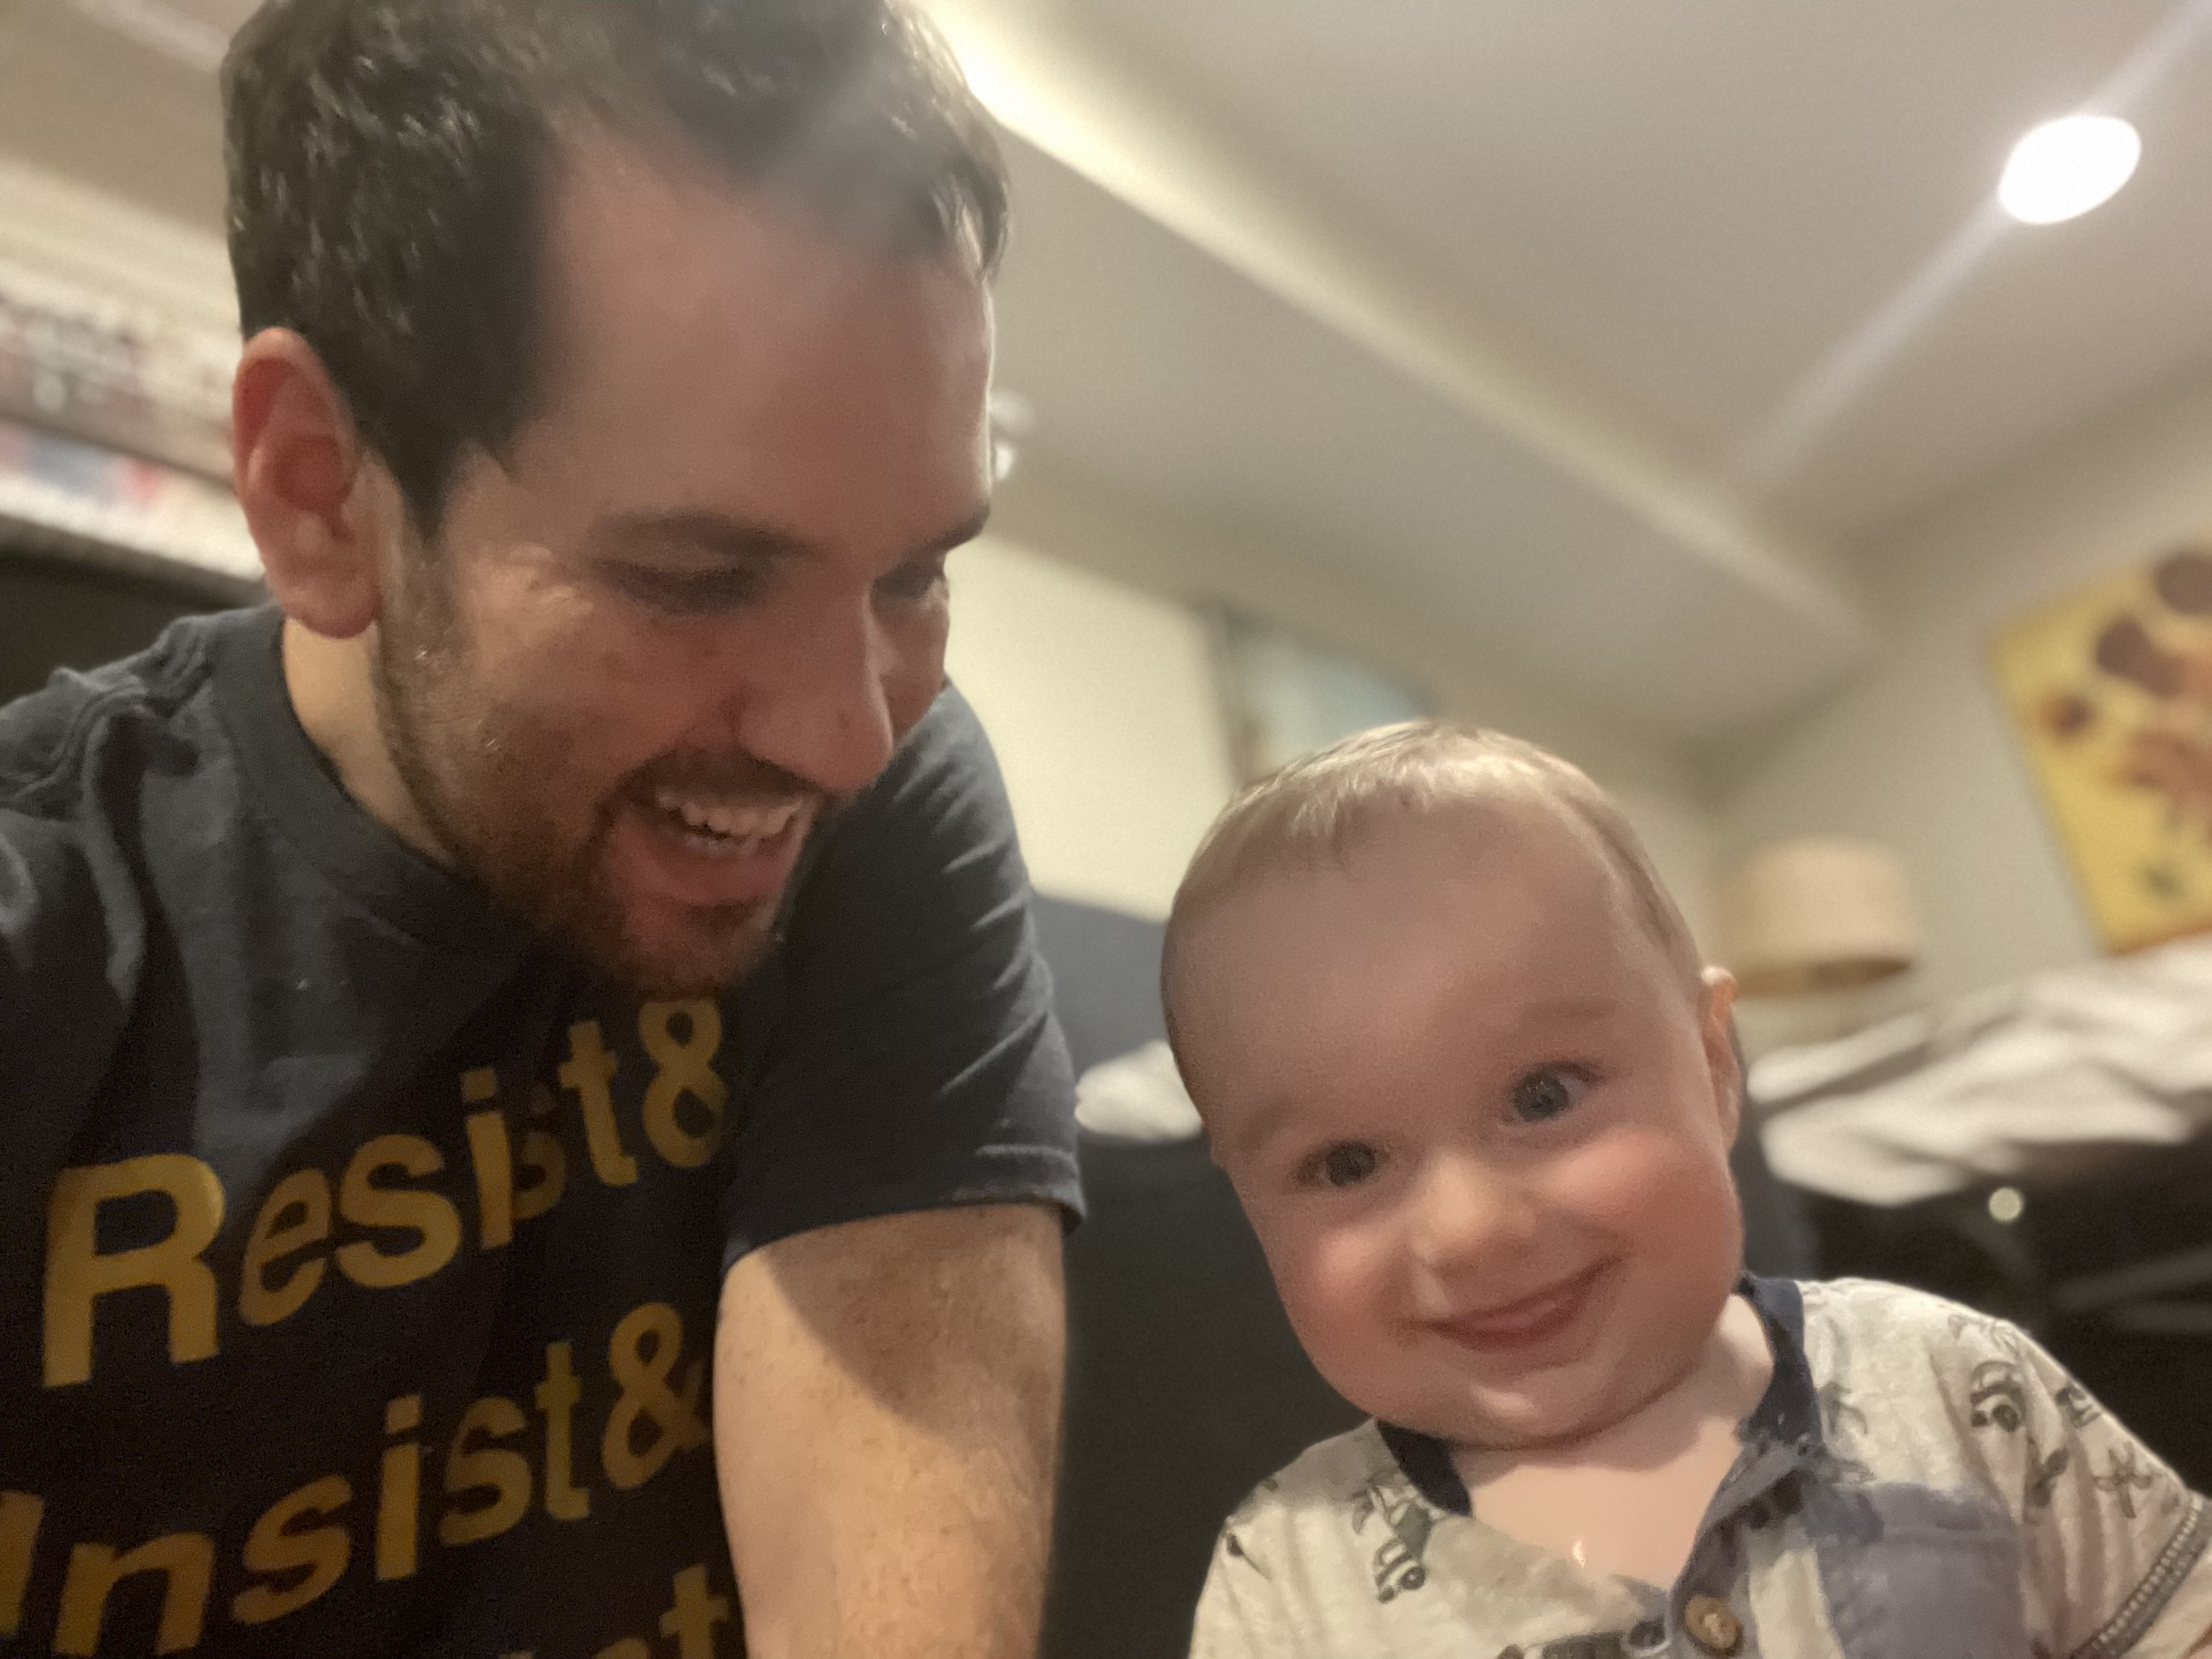 Ezra and Zeke sitting on the floor together. Zeke is smiling at the camera with his tongue stuck out and Ezra is wearing a Resist tshirt.